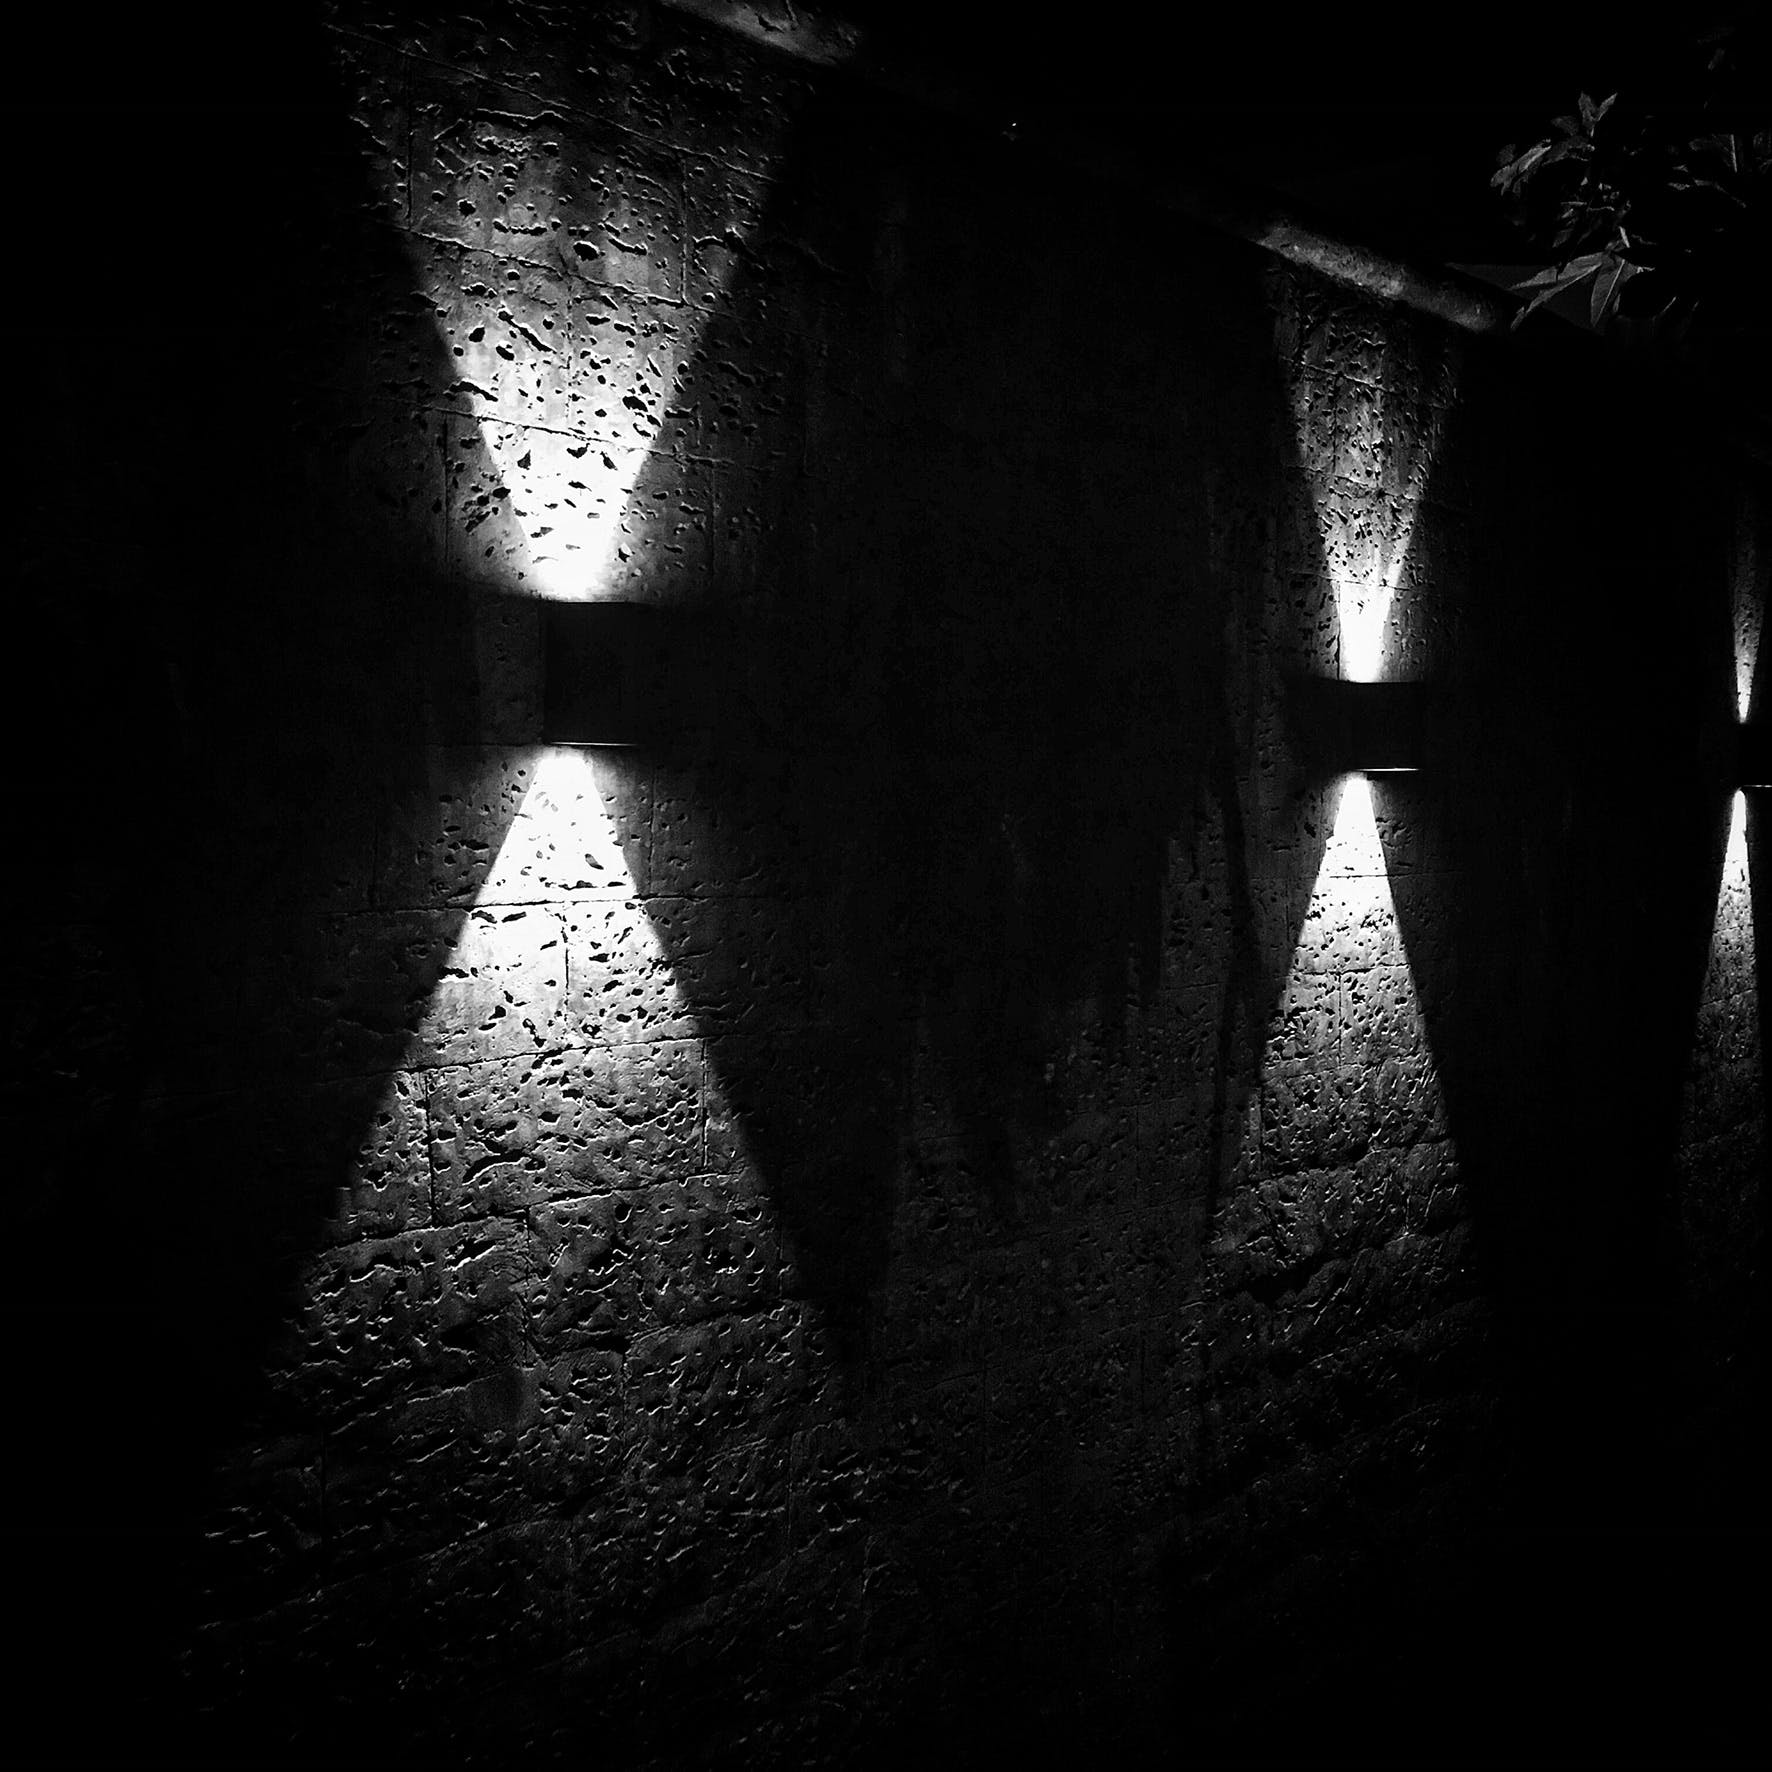 Free stock photo of black and white, lights, monochrome, shadows